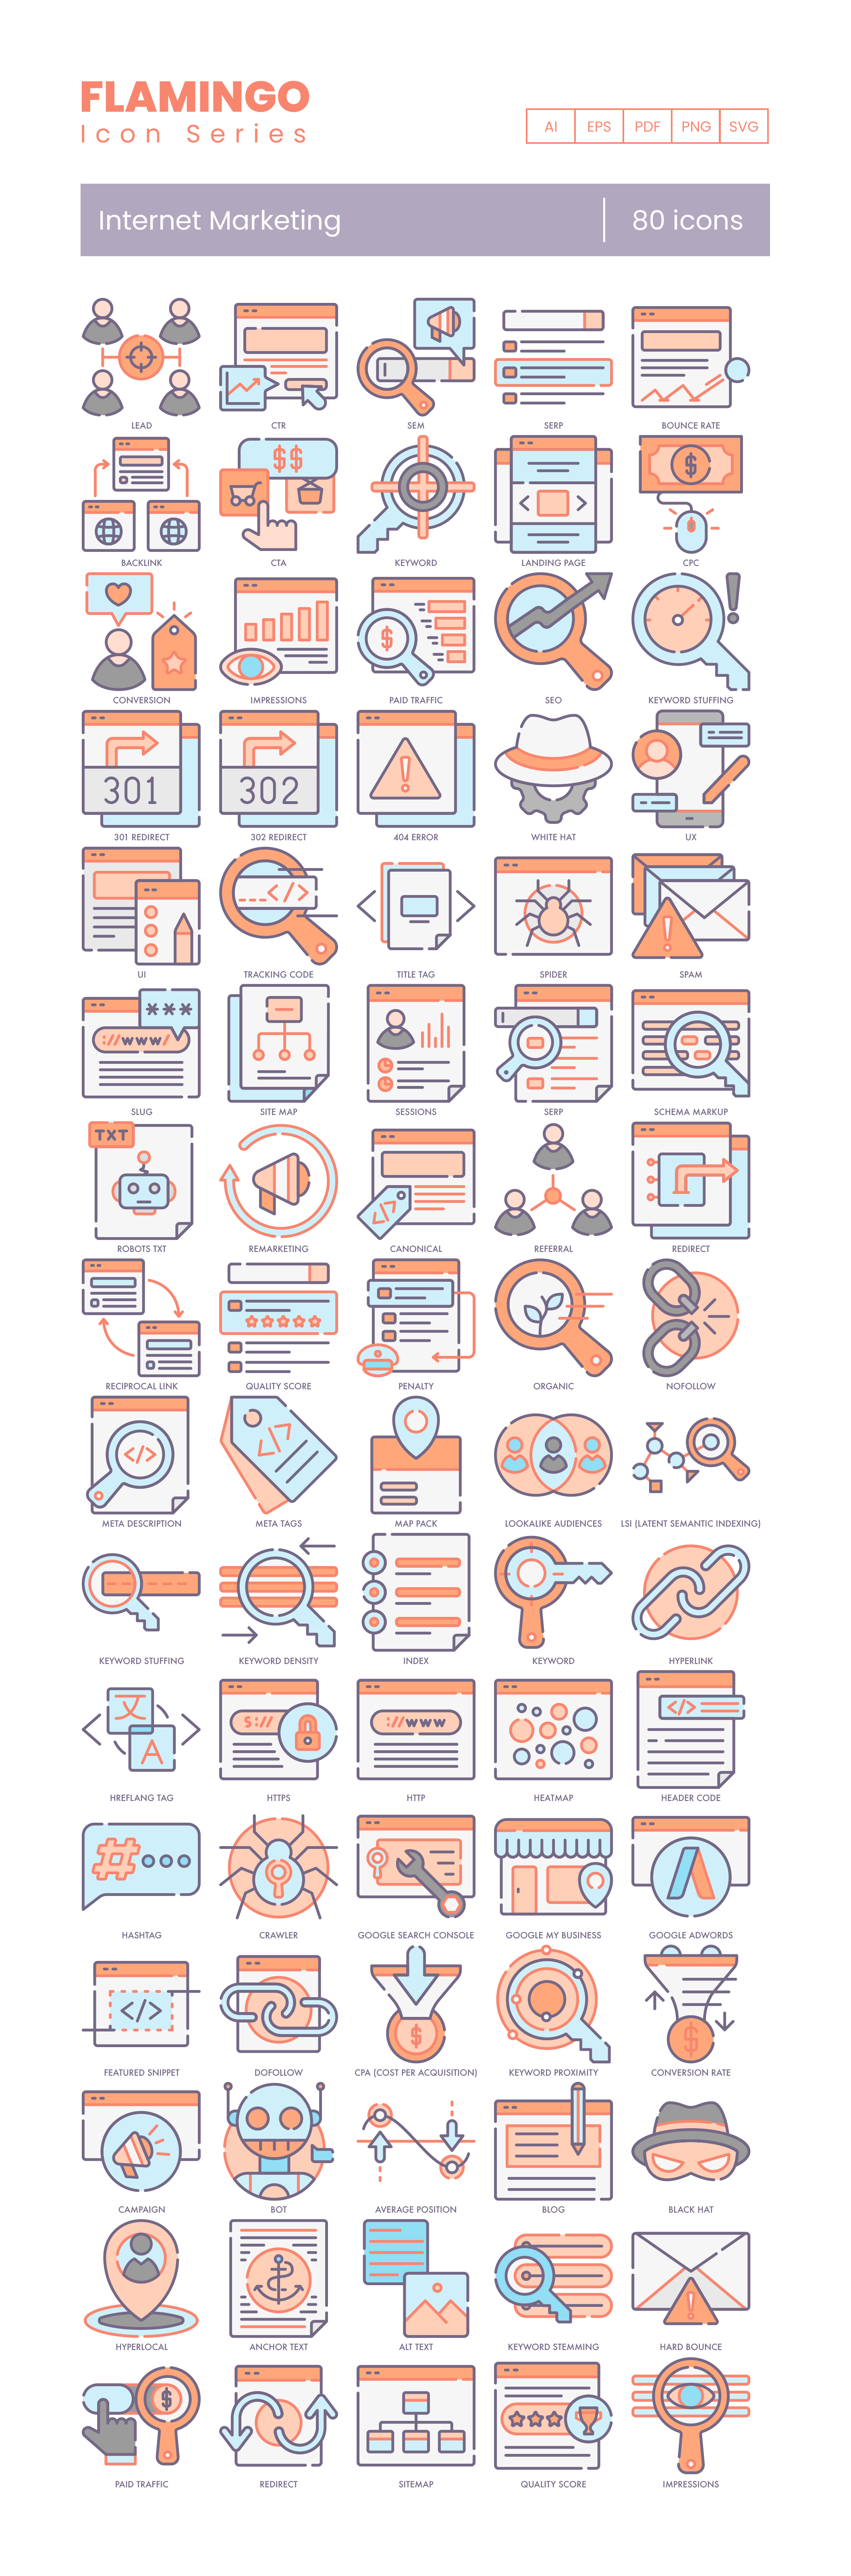 80 Internet Marketing Icons - Flamingo Series preview